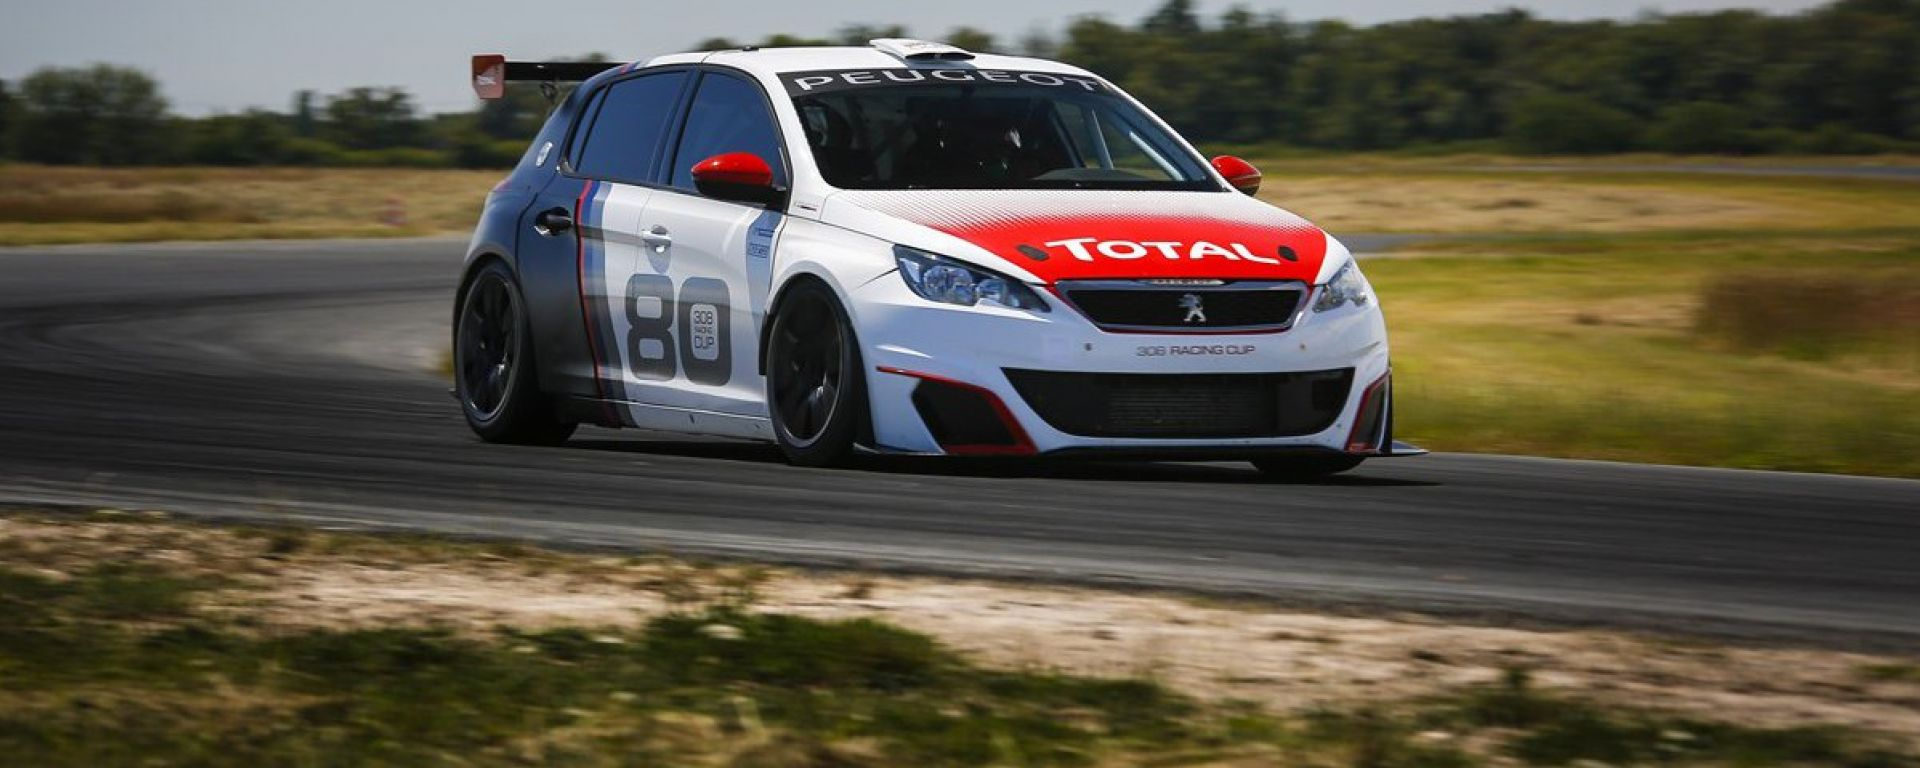 Peugeot 308 Racing Cup - un kit TCR Perfo sarà disponibile per la stagione 2018